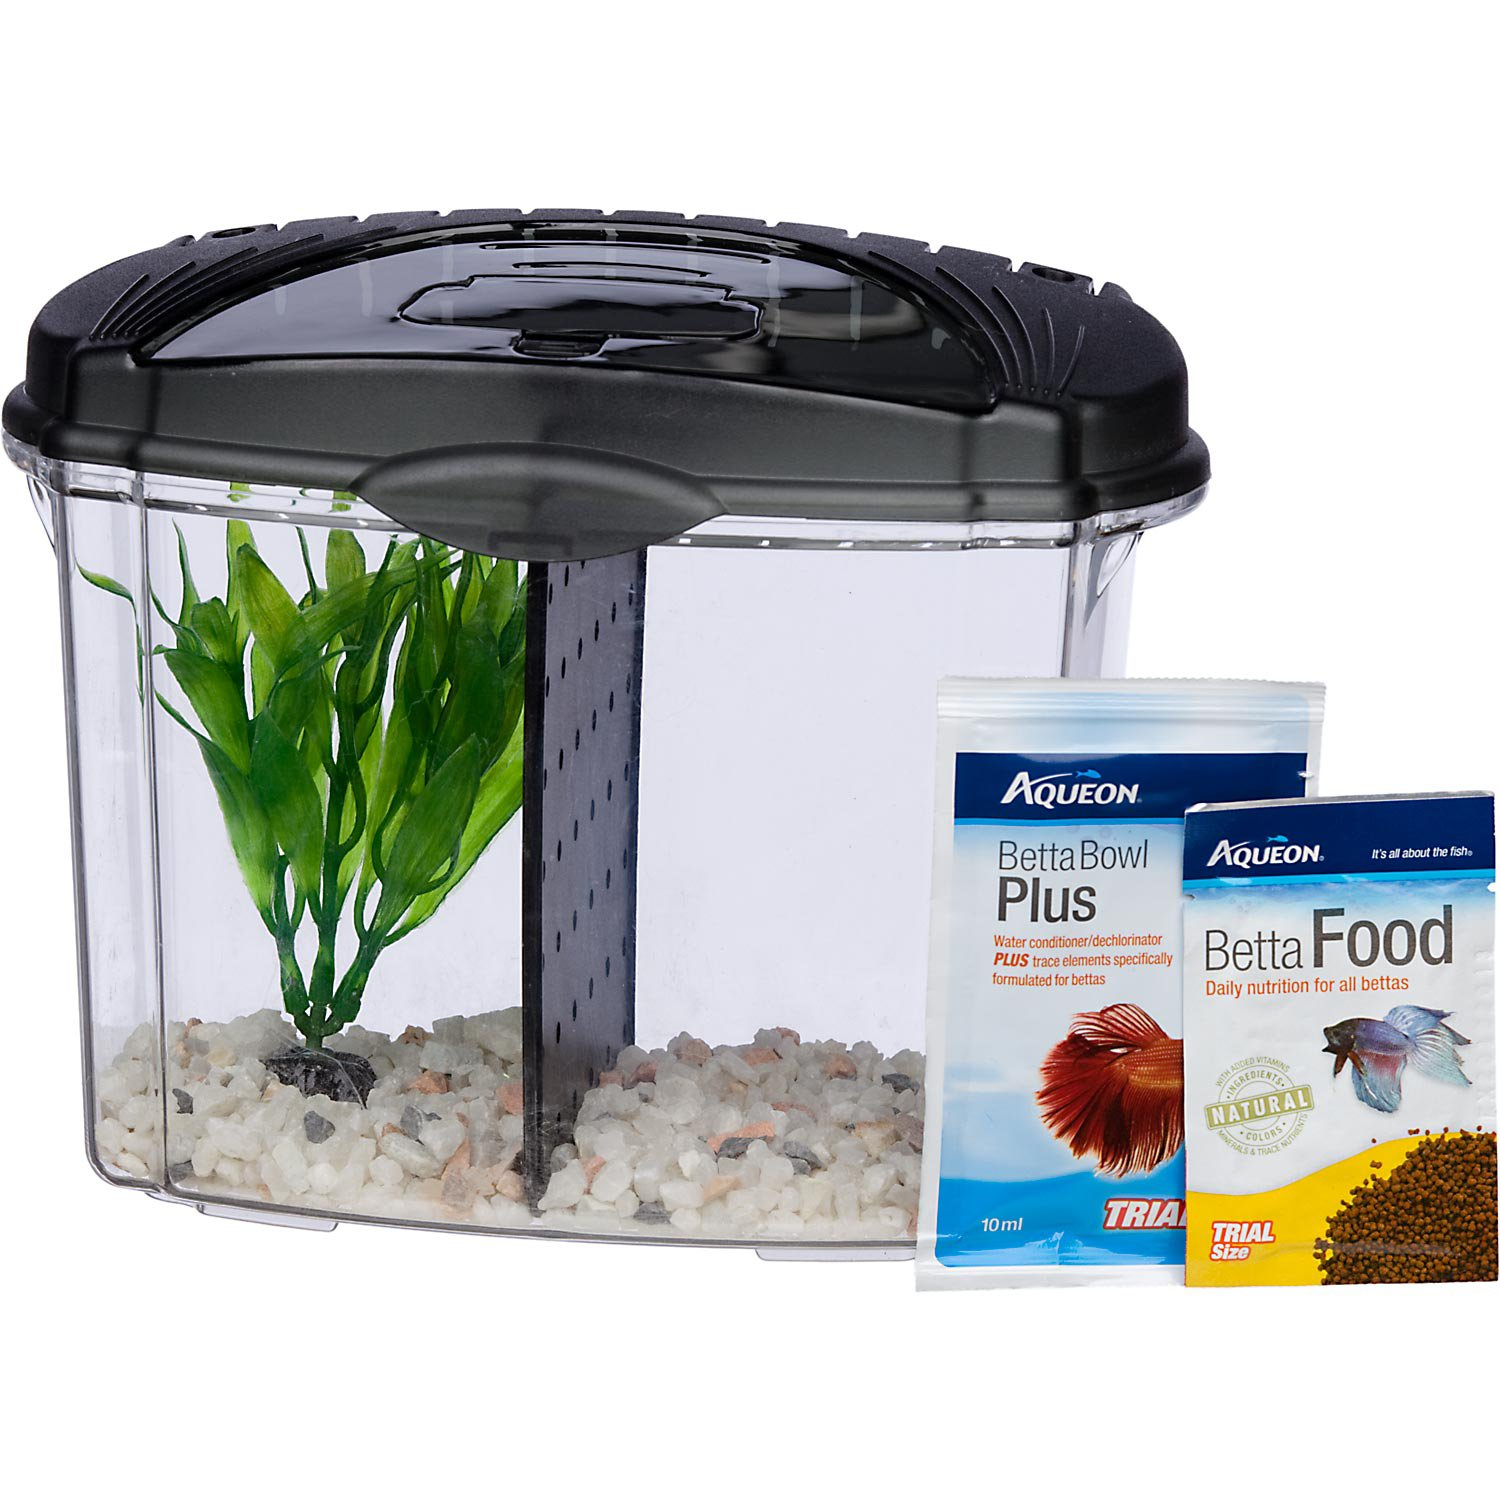 Aqueon Betta Bowl Aquarium Kit in Black